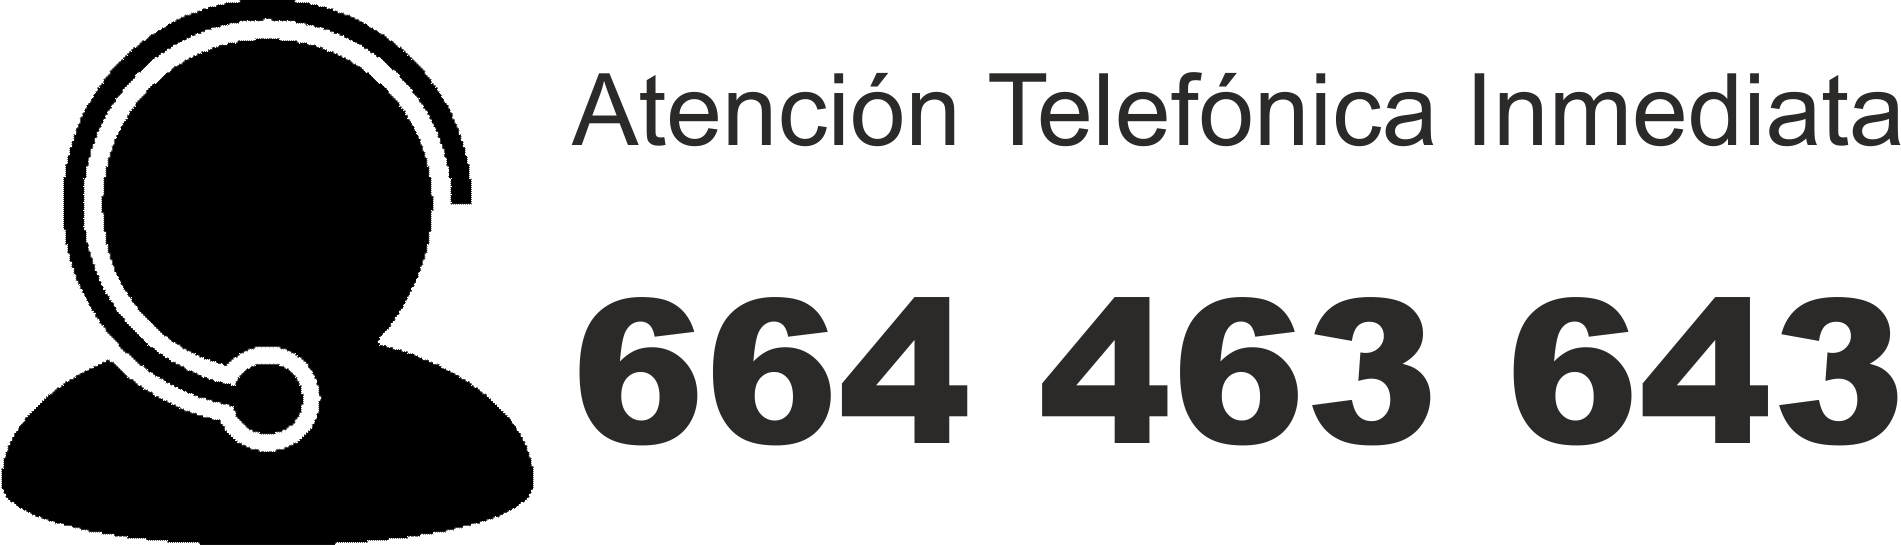 atencion telefonica motor global assist